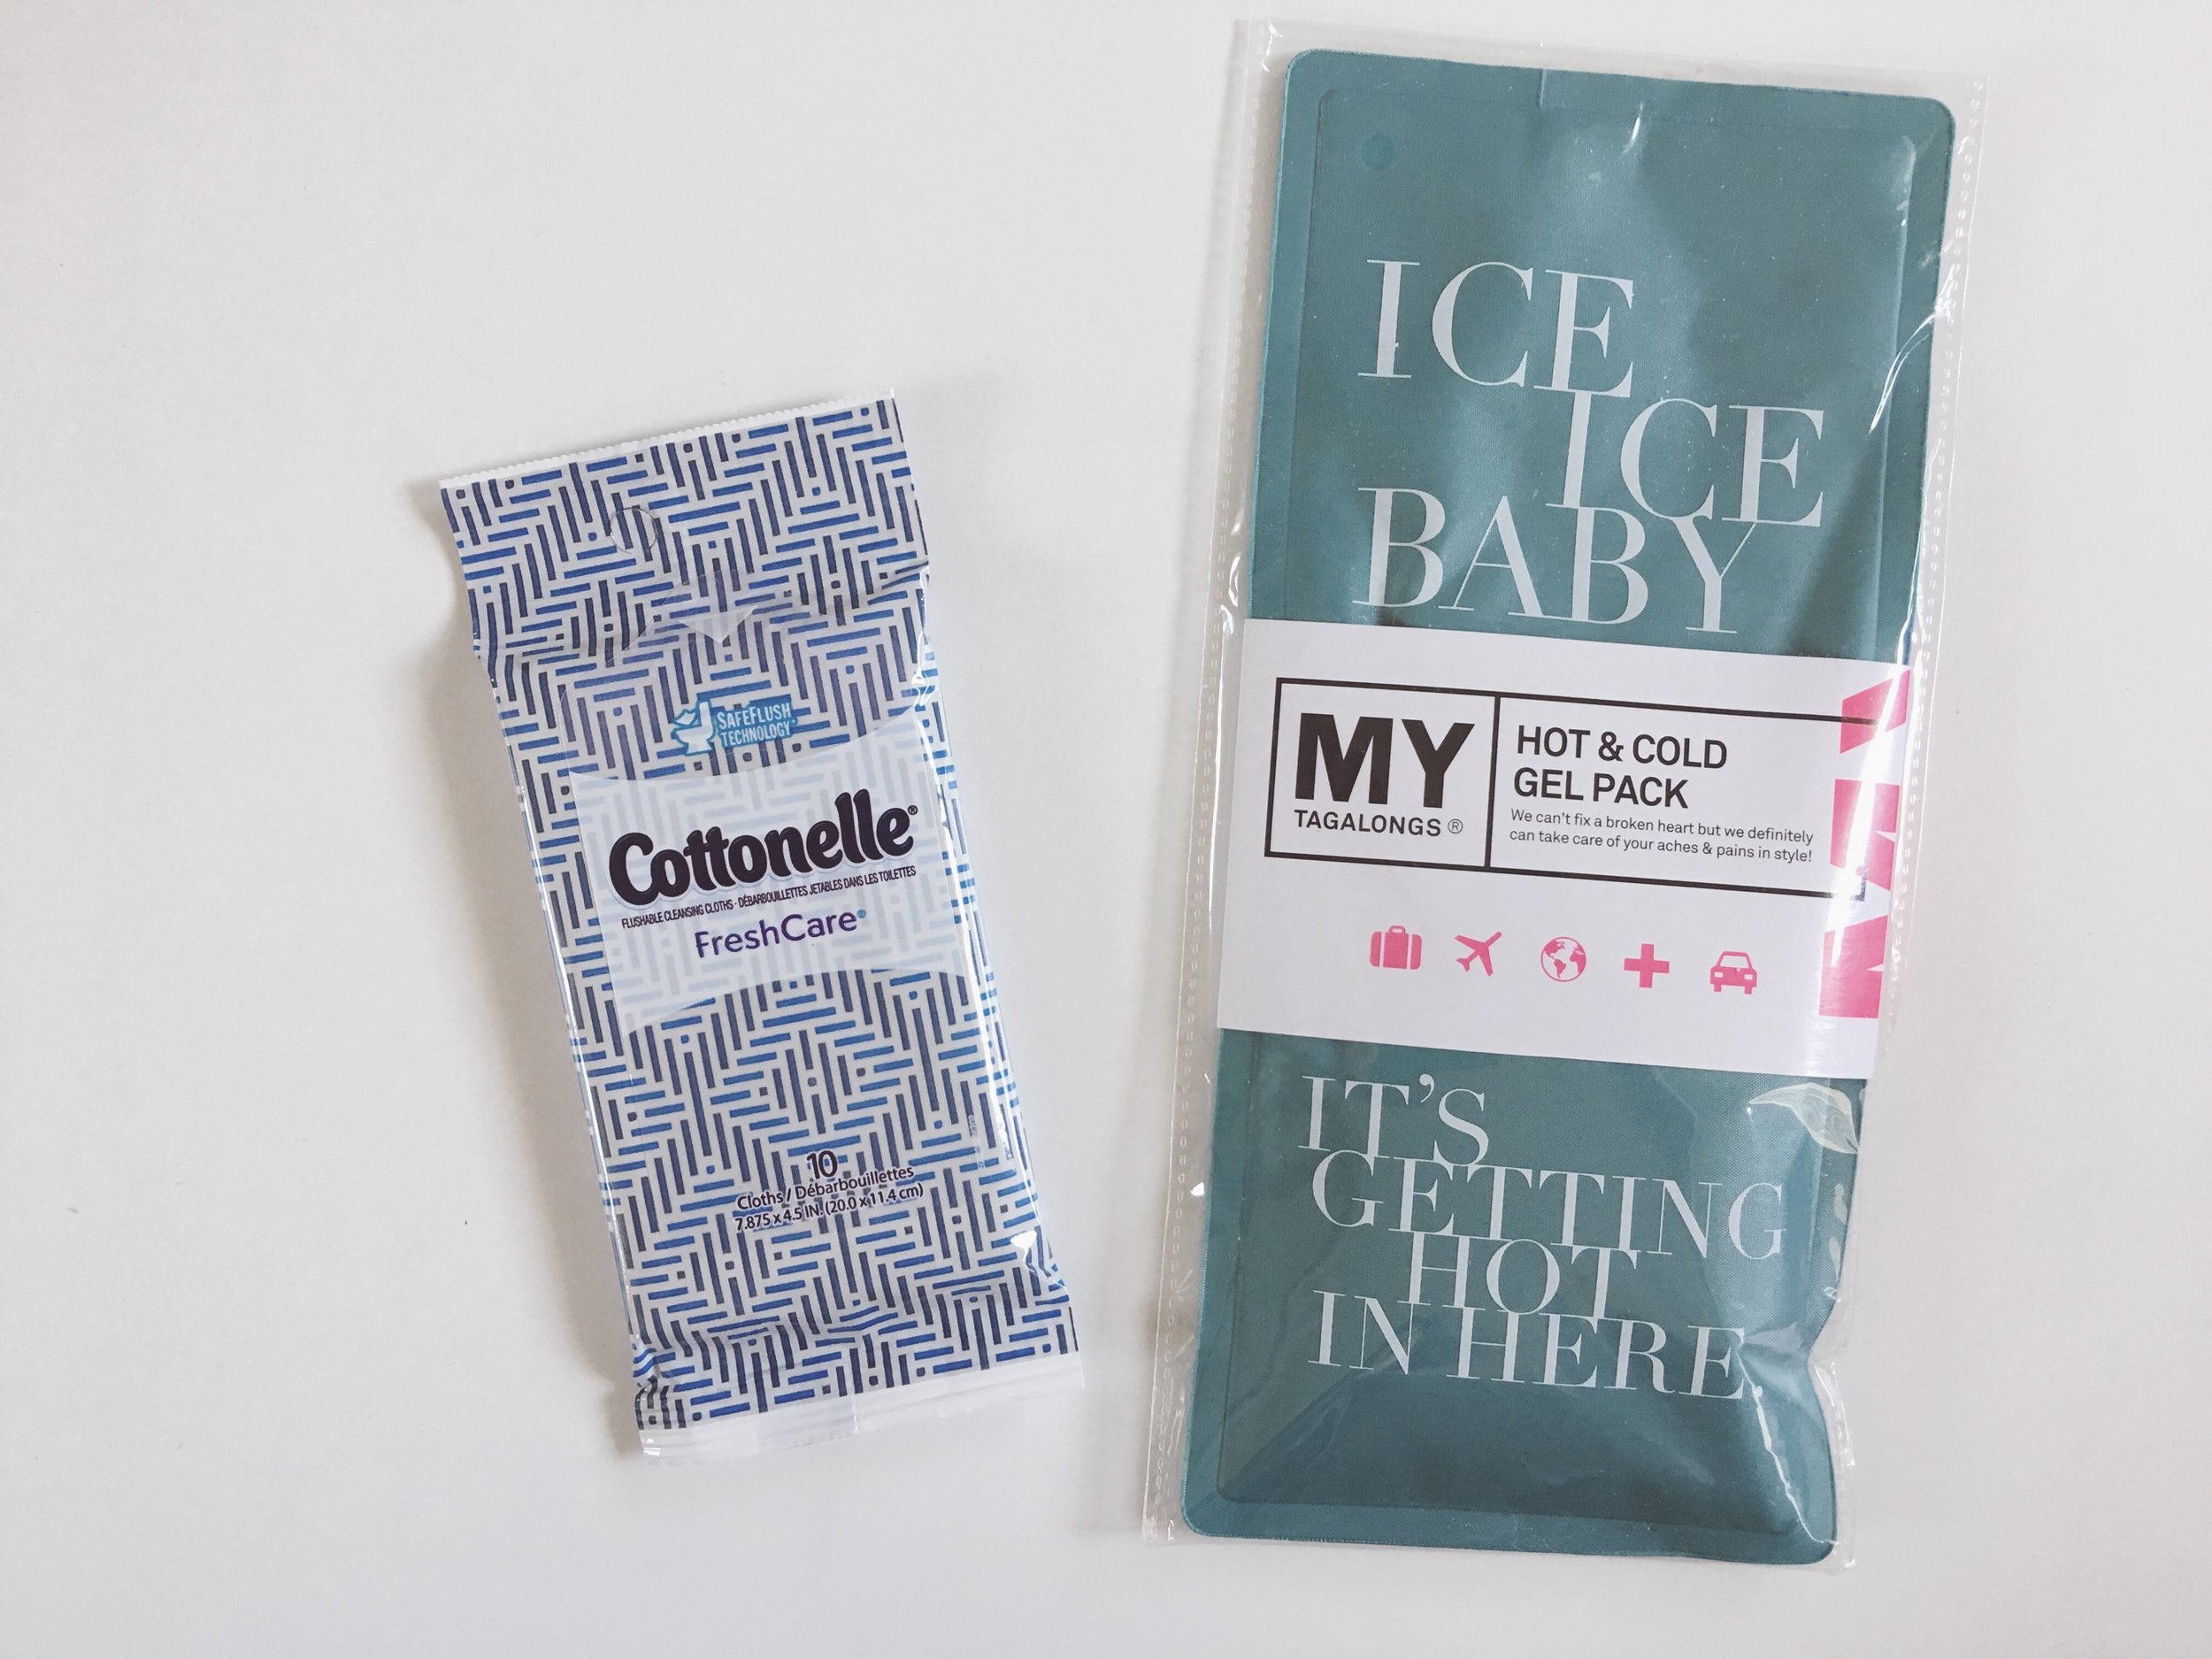 Cotenelle + Mytagalongs - Cleansing Cloths + Hot & Cold Gel Pack